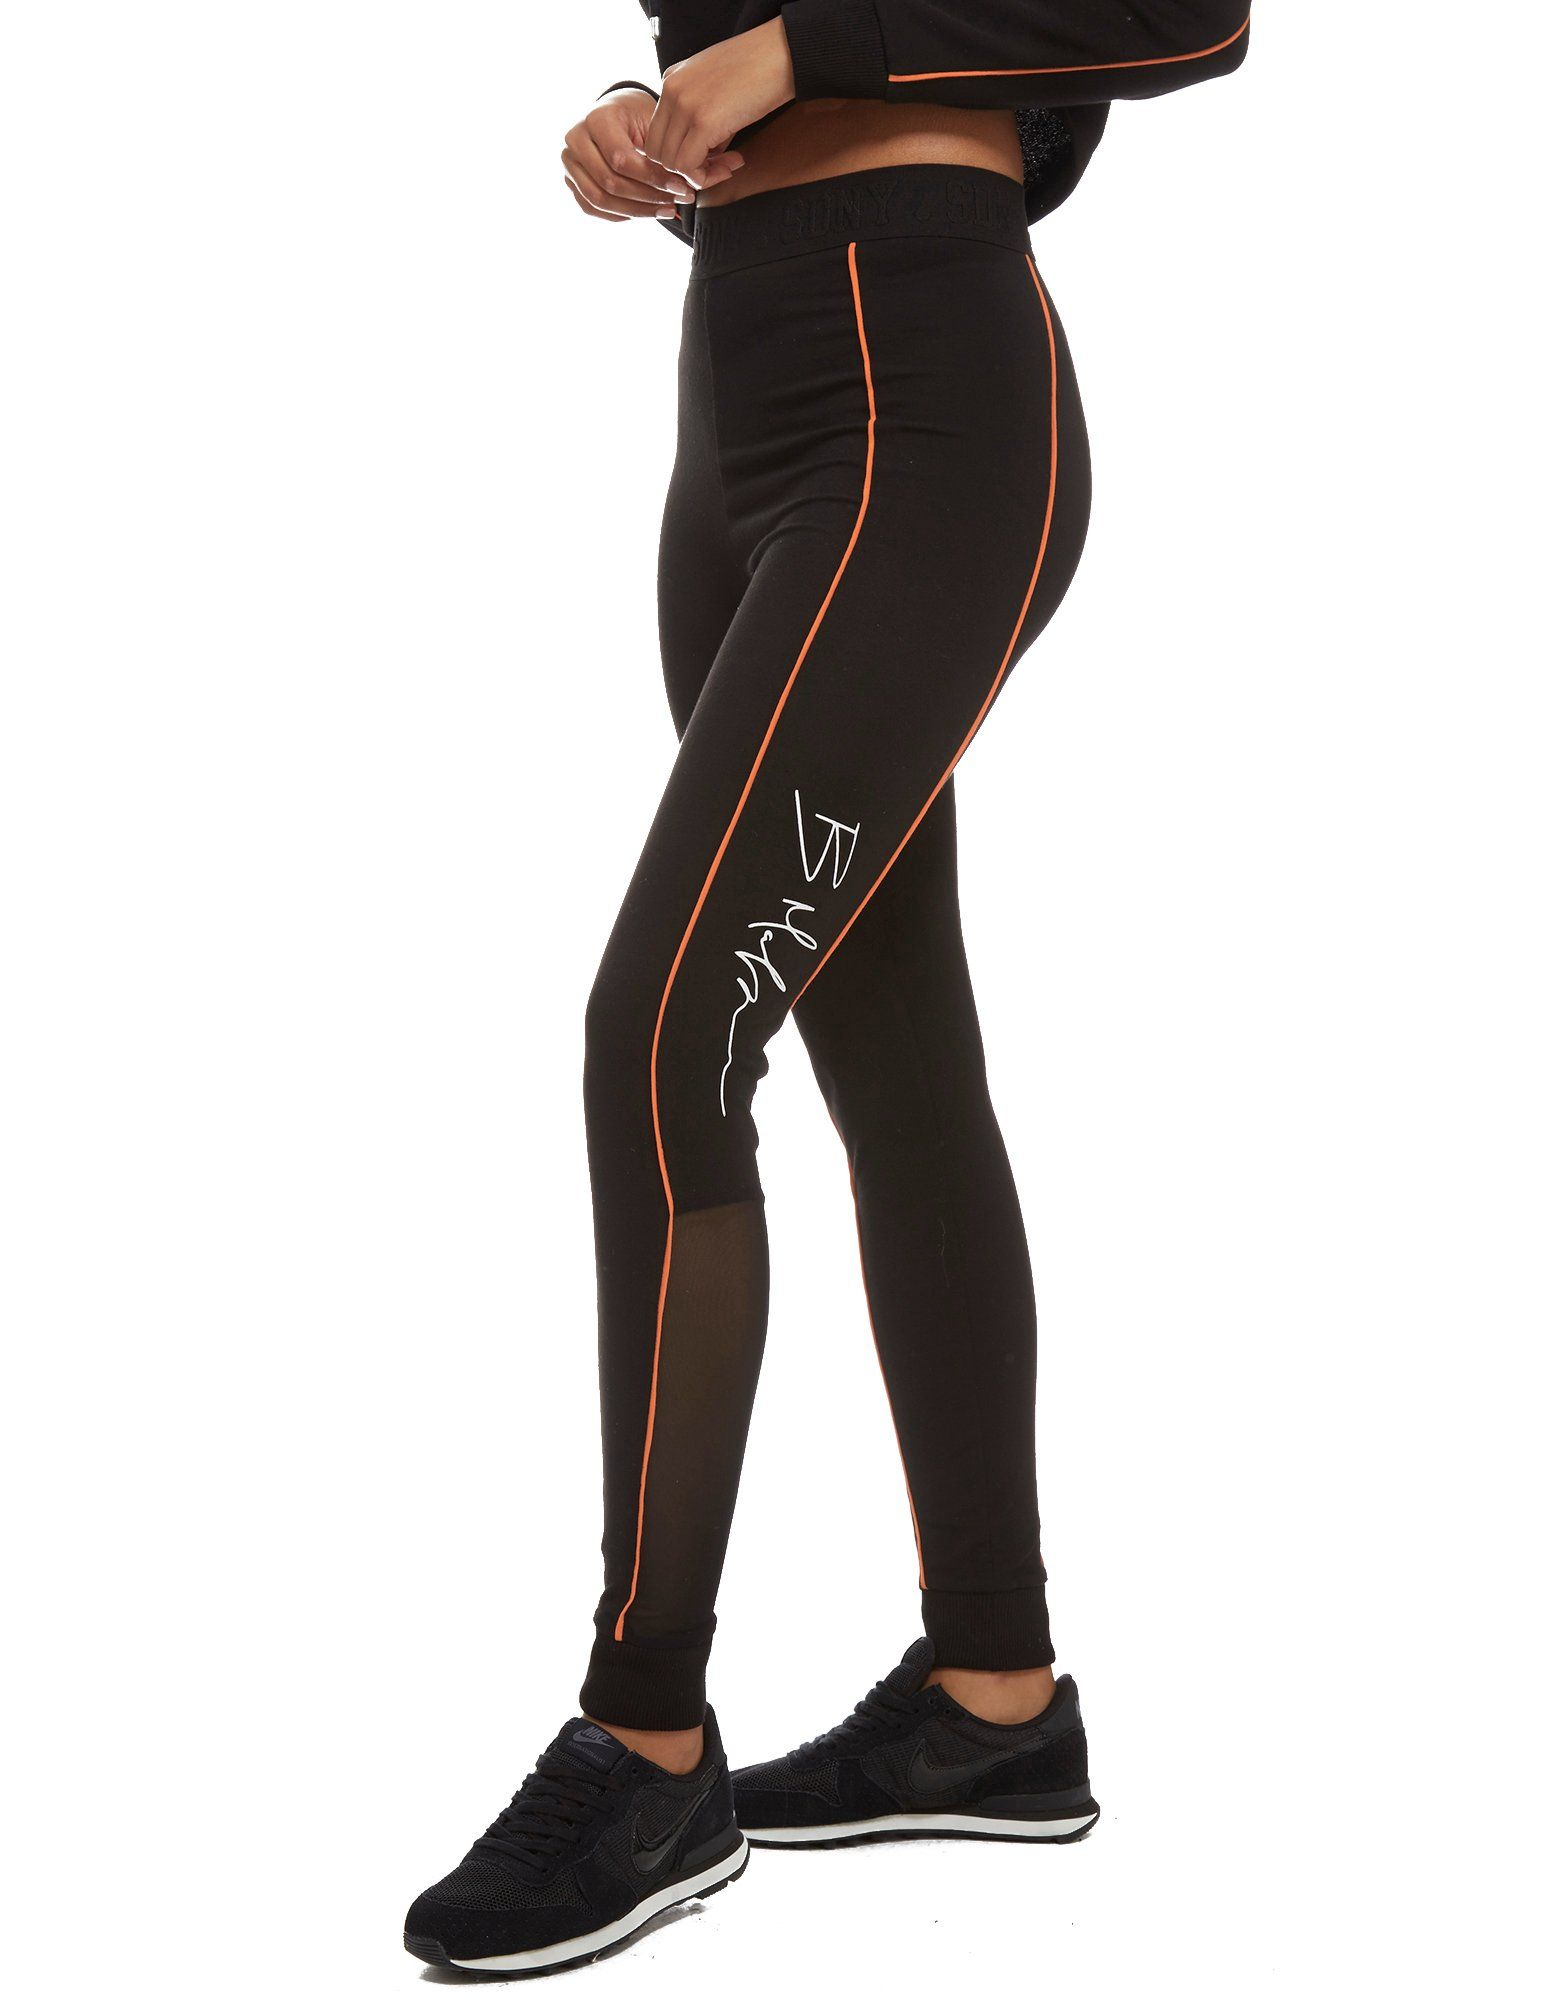 Supply and Demand Bugzy Malone Beauty Leggings £22.00 ... 8d02f39be0f